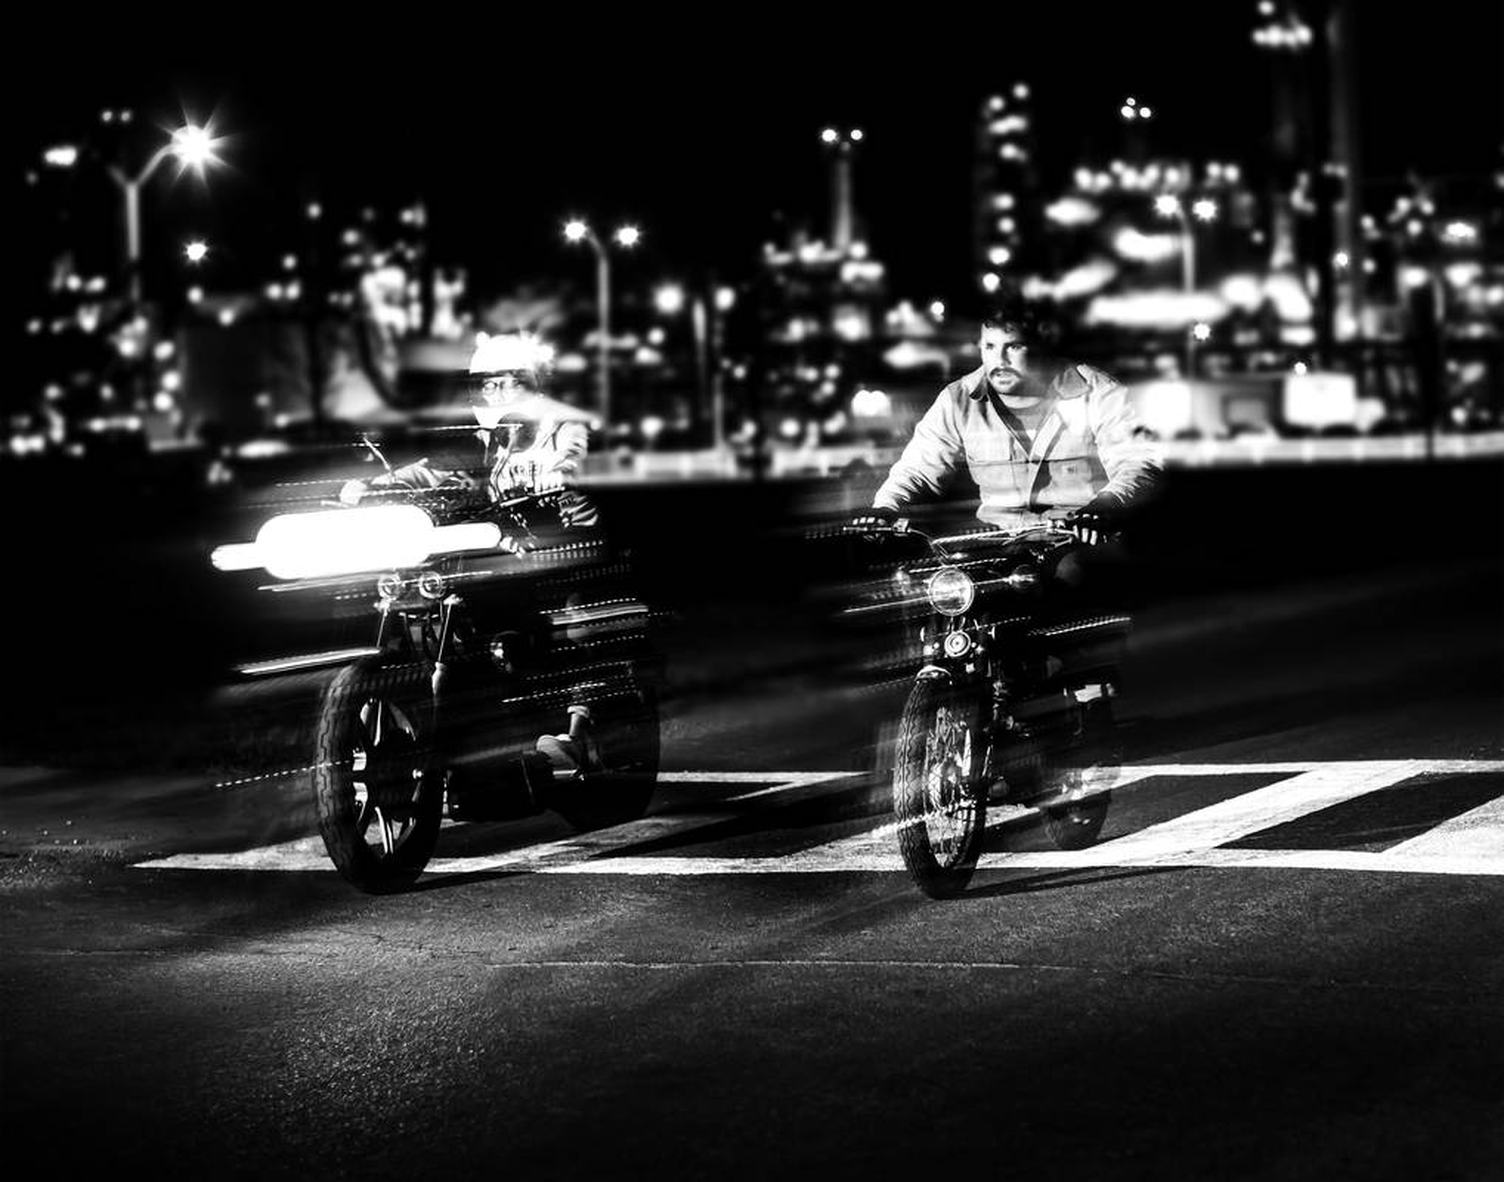 Motion of Two Bikers Racing on the Street at Night